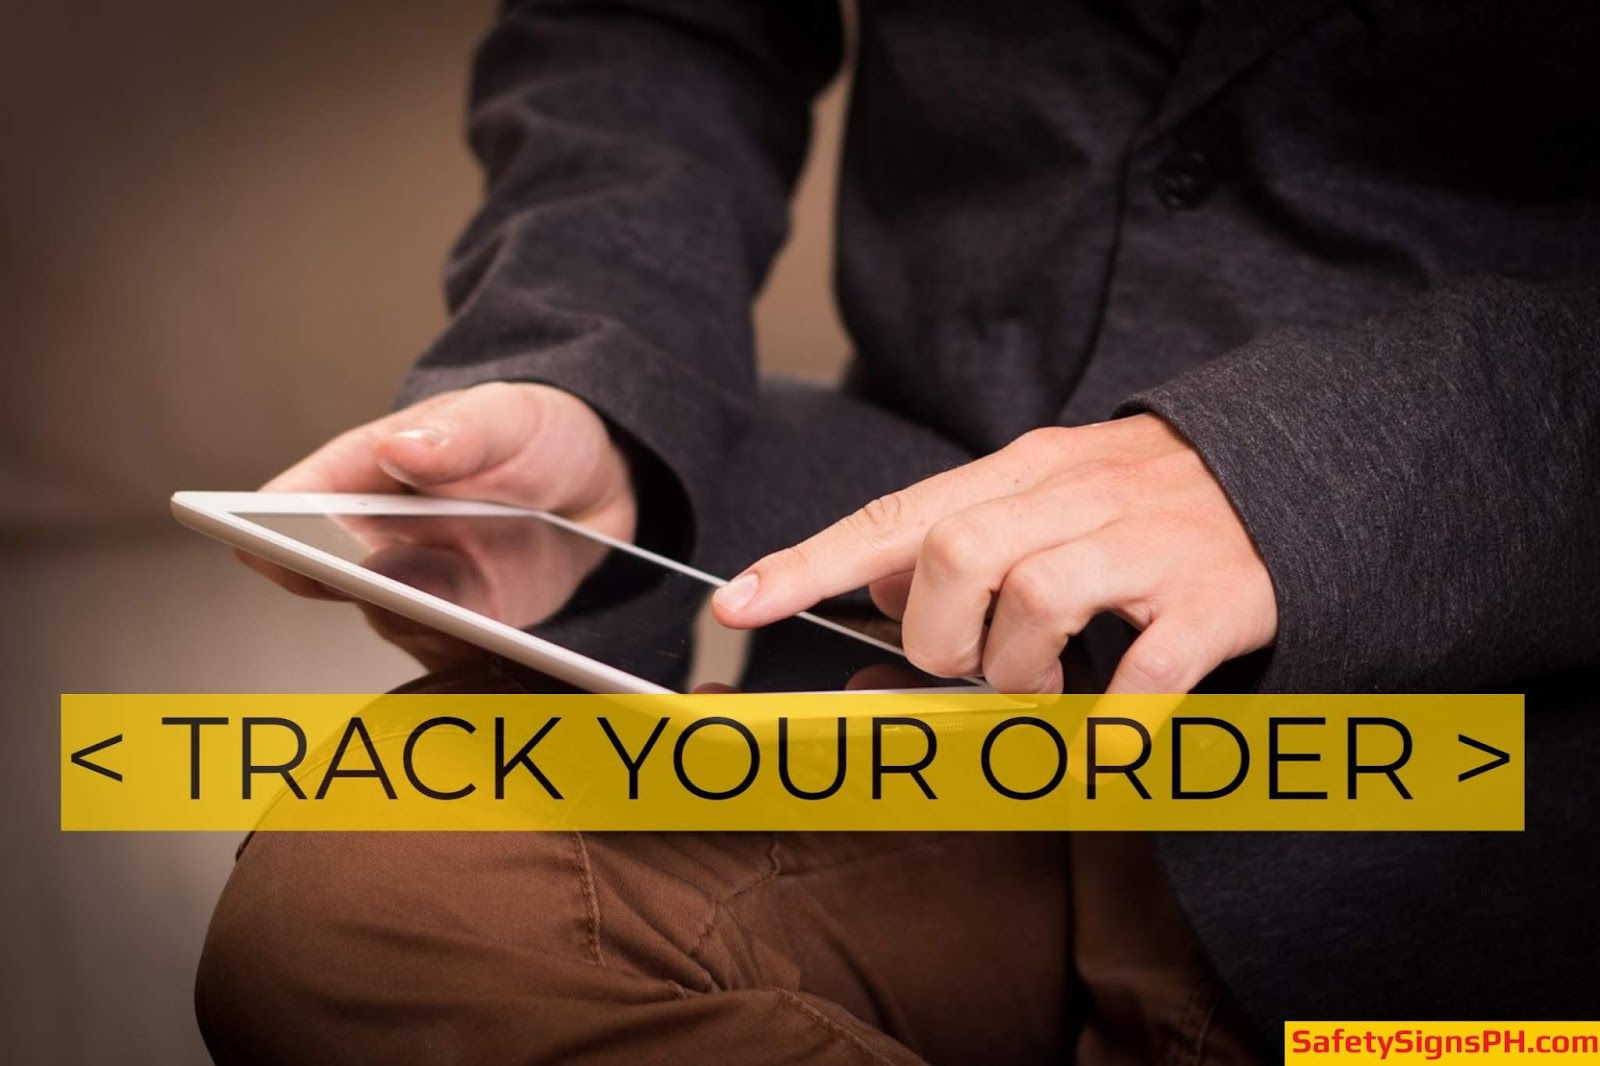 Track Your Order - Safety Signs Philippines